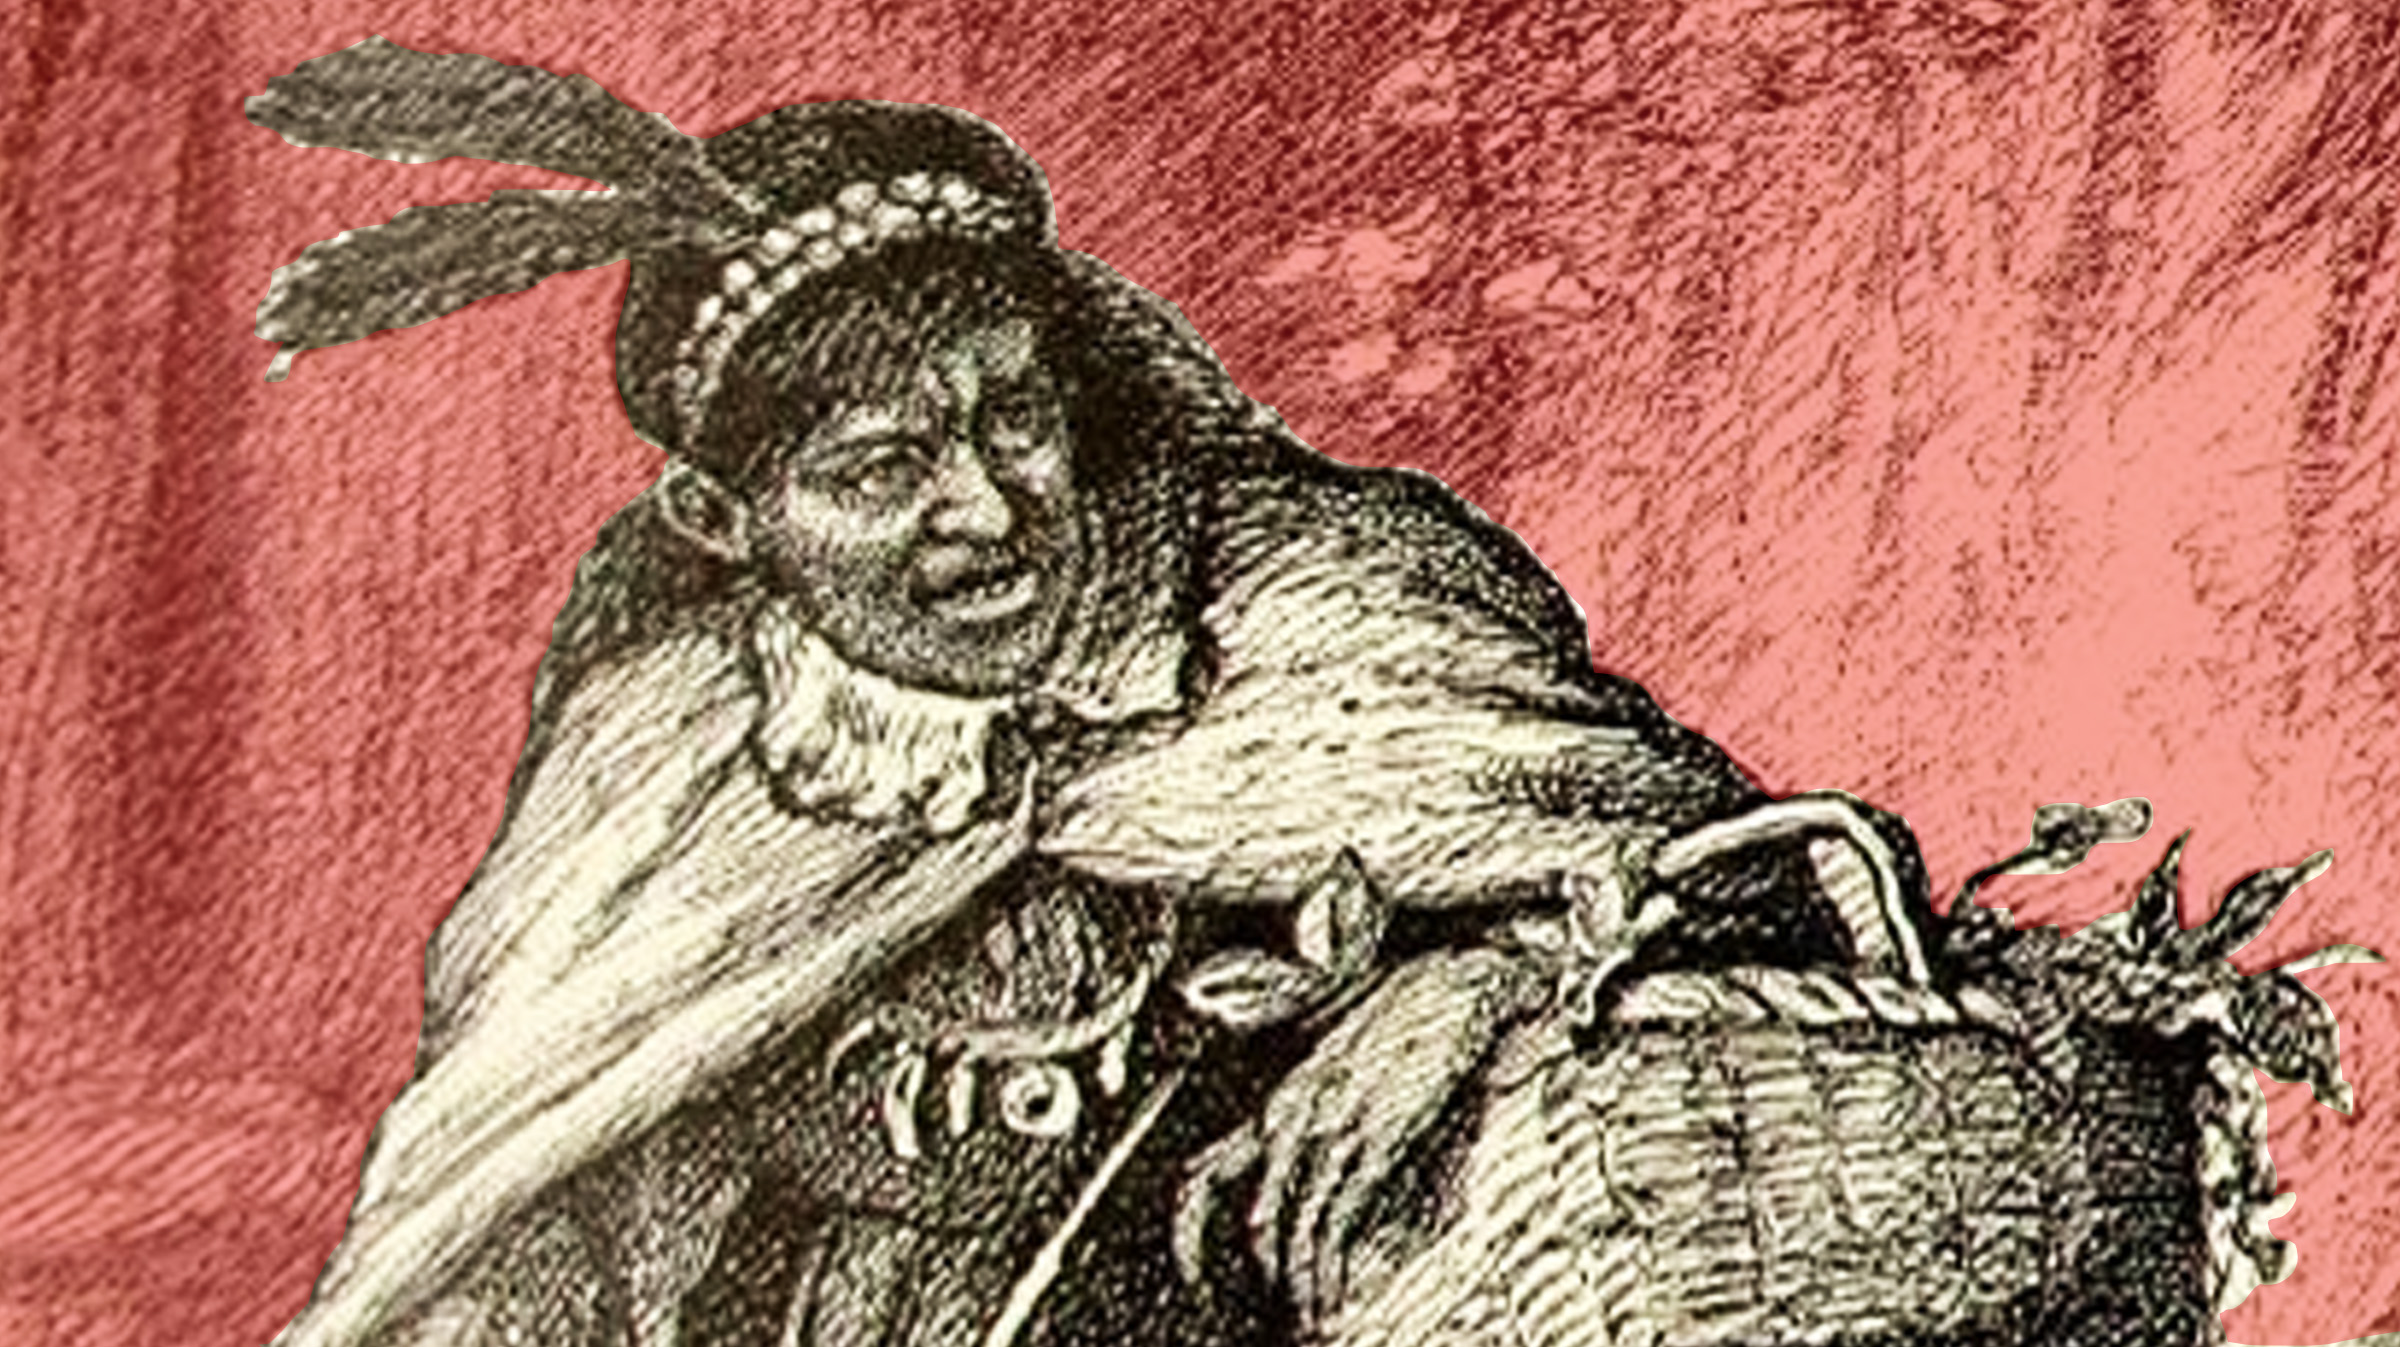 The True Story of Tituba, the Slave at the Center of the Salem Witch